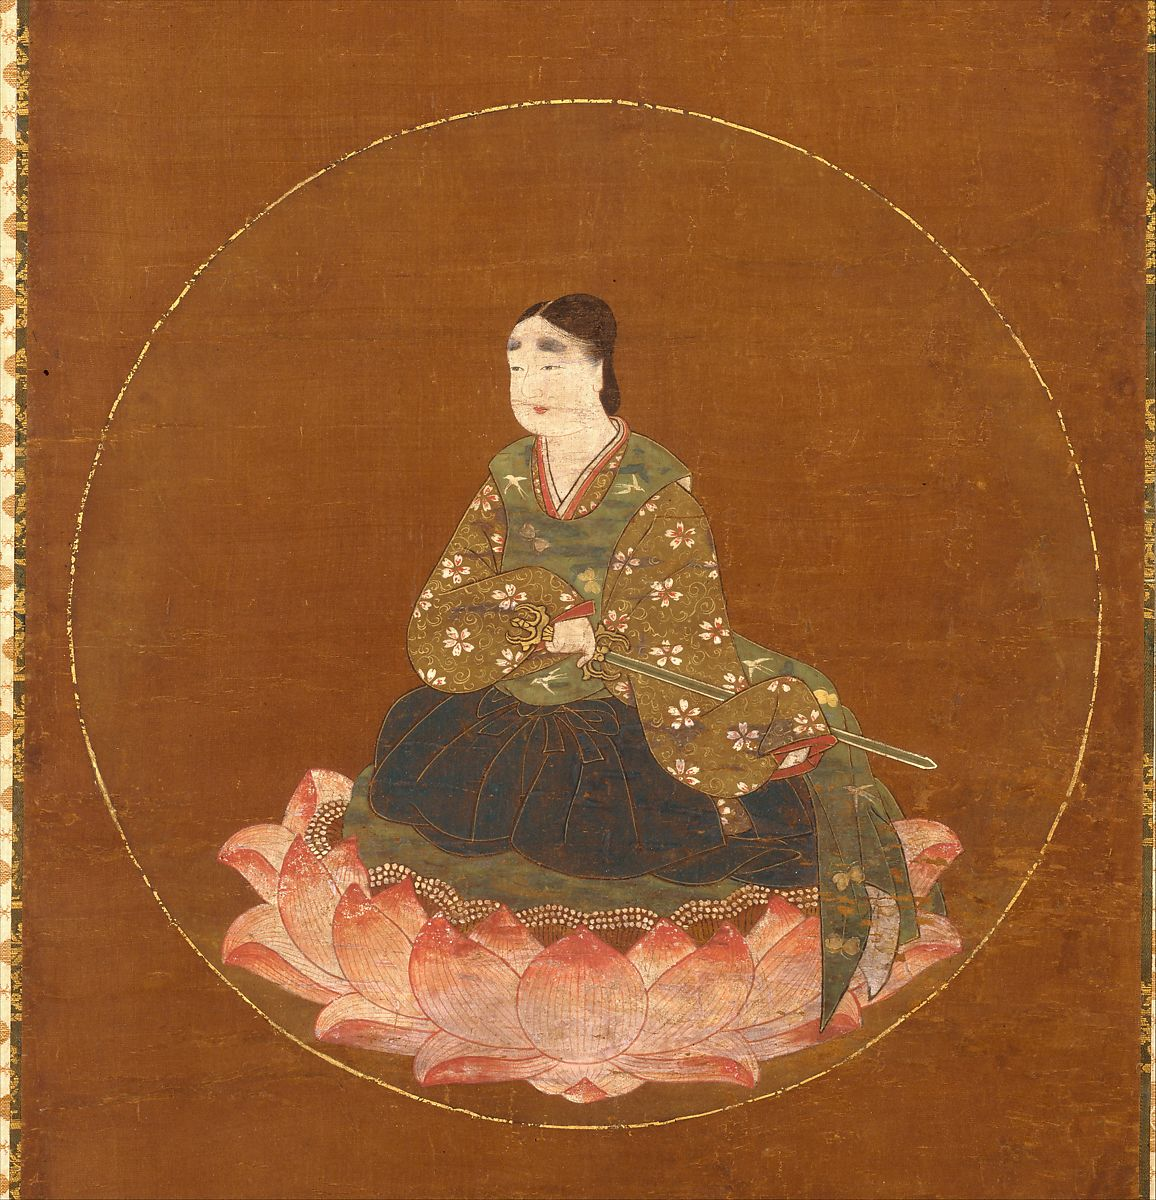 Mandala of Wakamiya of Kasuga Shrine showing man sitting on pink and white lotus blossoms in traditional Japanese attire